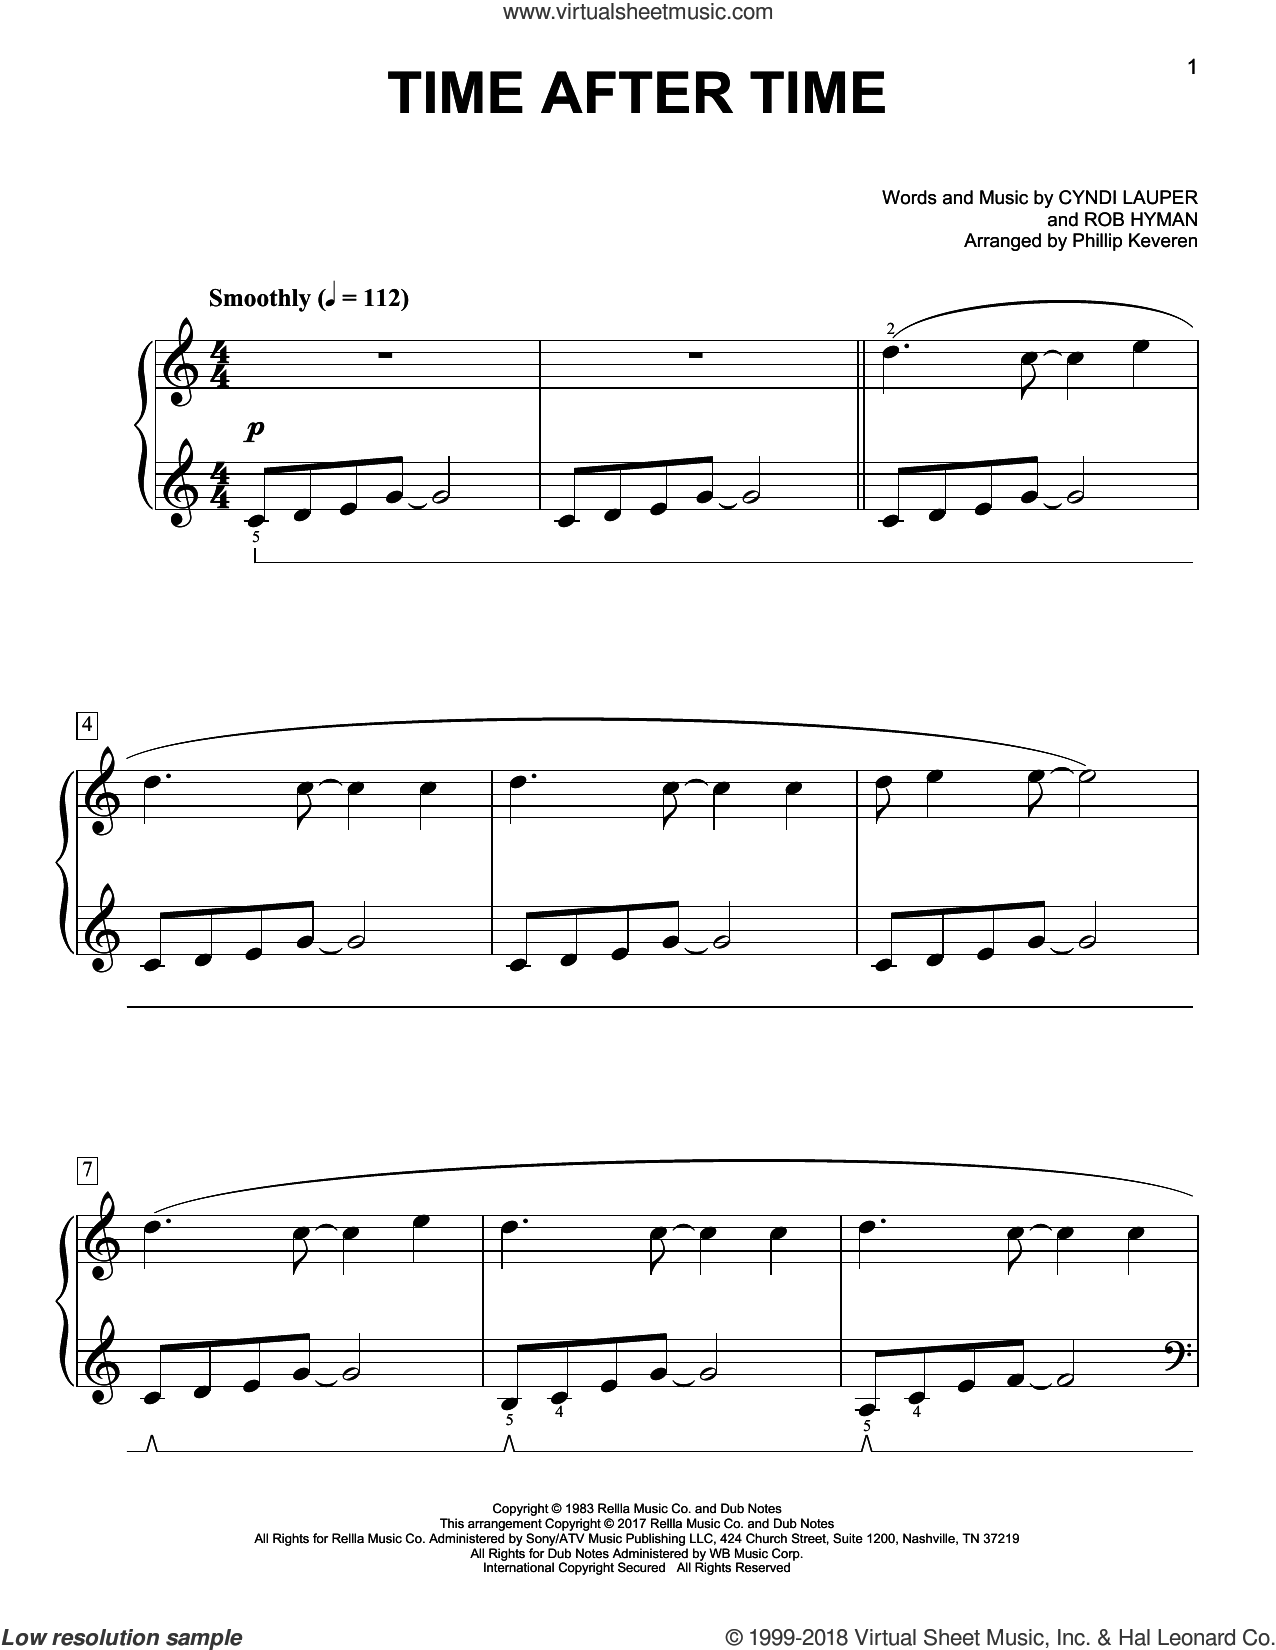 Time After Time [Classical version] (arr. Phillip Keveren) sheet music for piano solo by Cyndi Lauper, Phillip Keveren, Cyndi Lauper featuring Sarah McLachlan, Inoj, Javier Colon and Rob Hyman, easy skill level